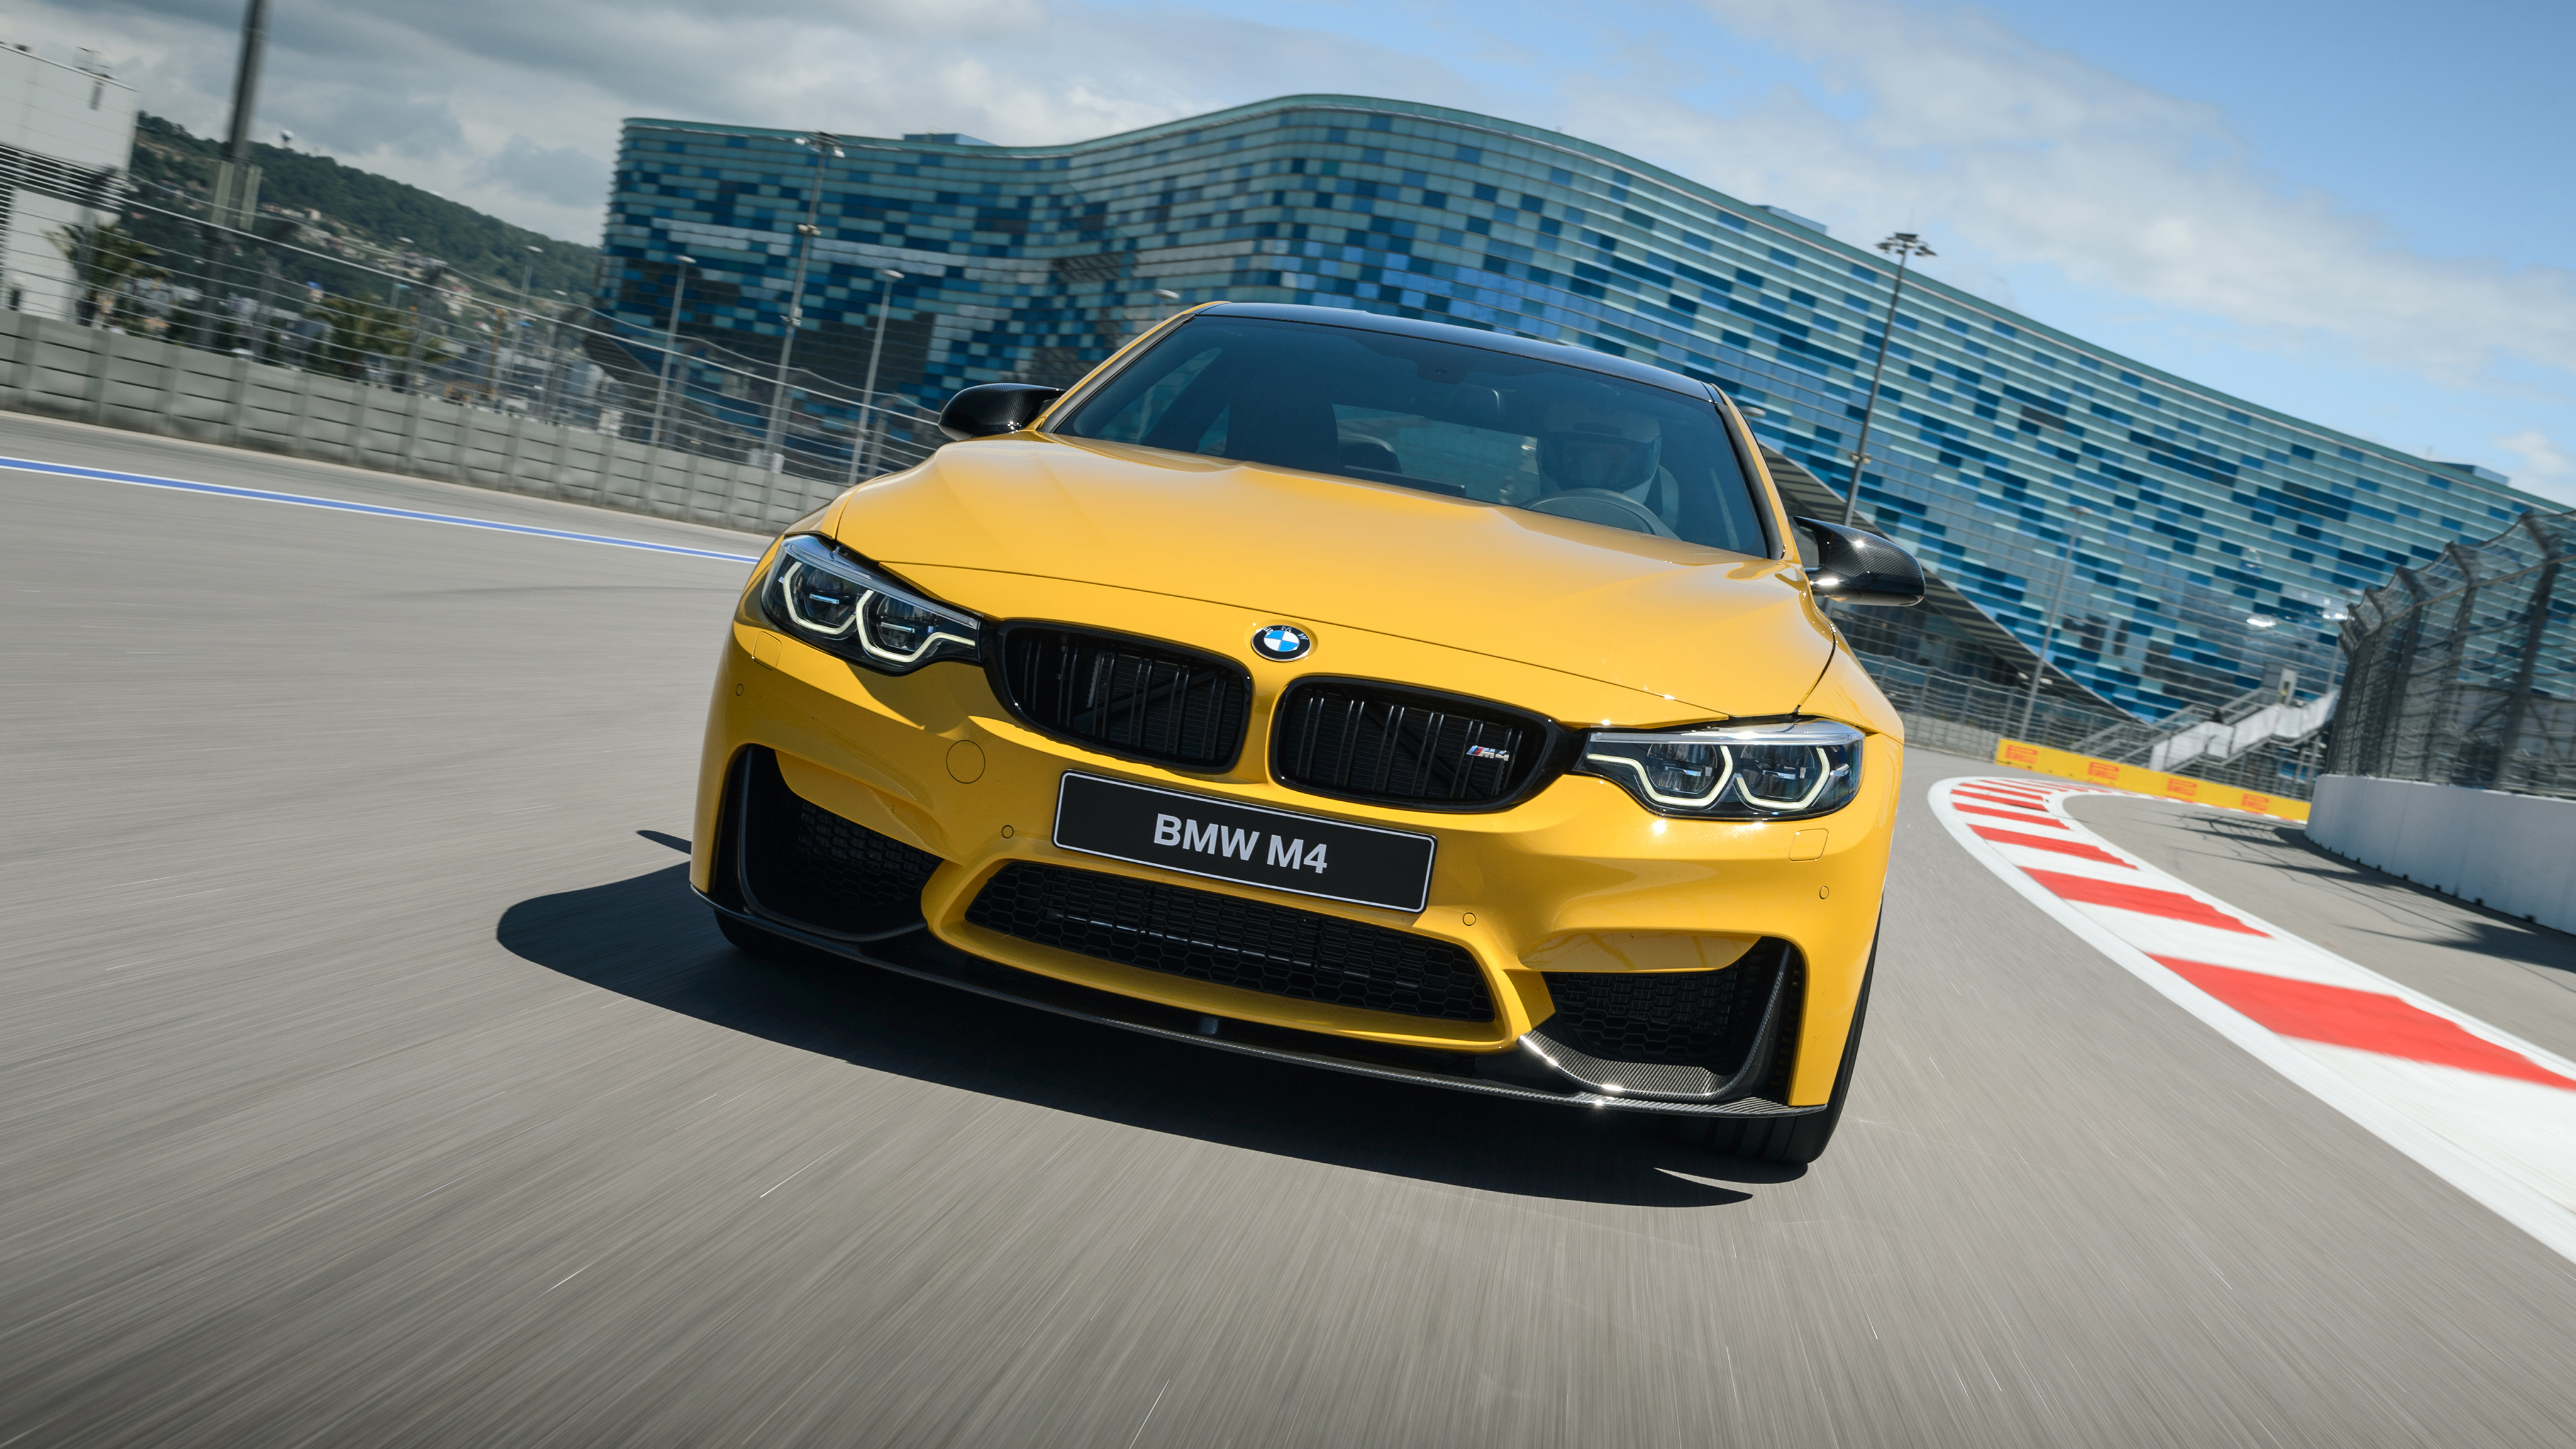 2017 Bmw M4 Coupe Competition 4 Wallpaper Hd Car